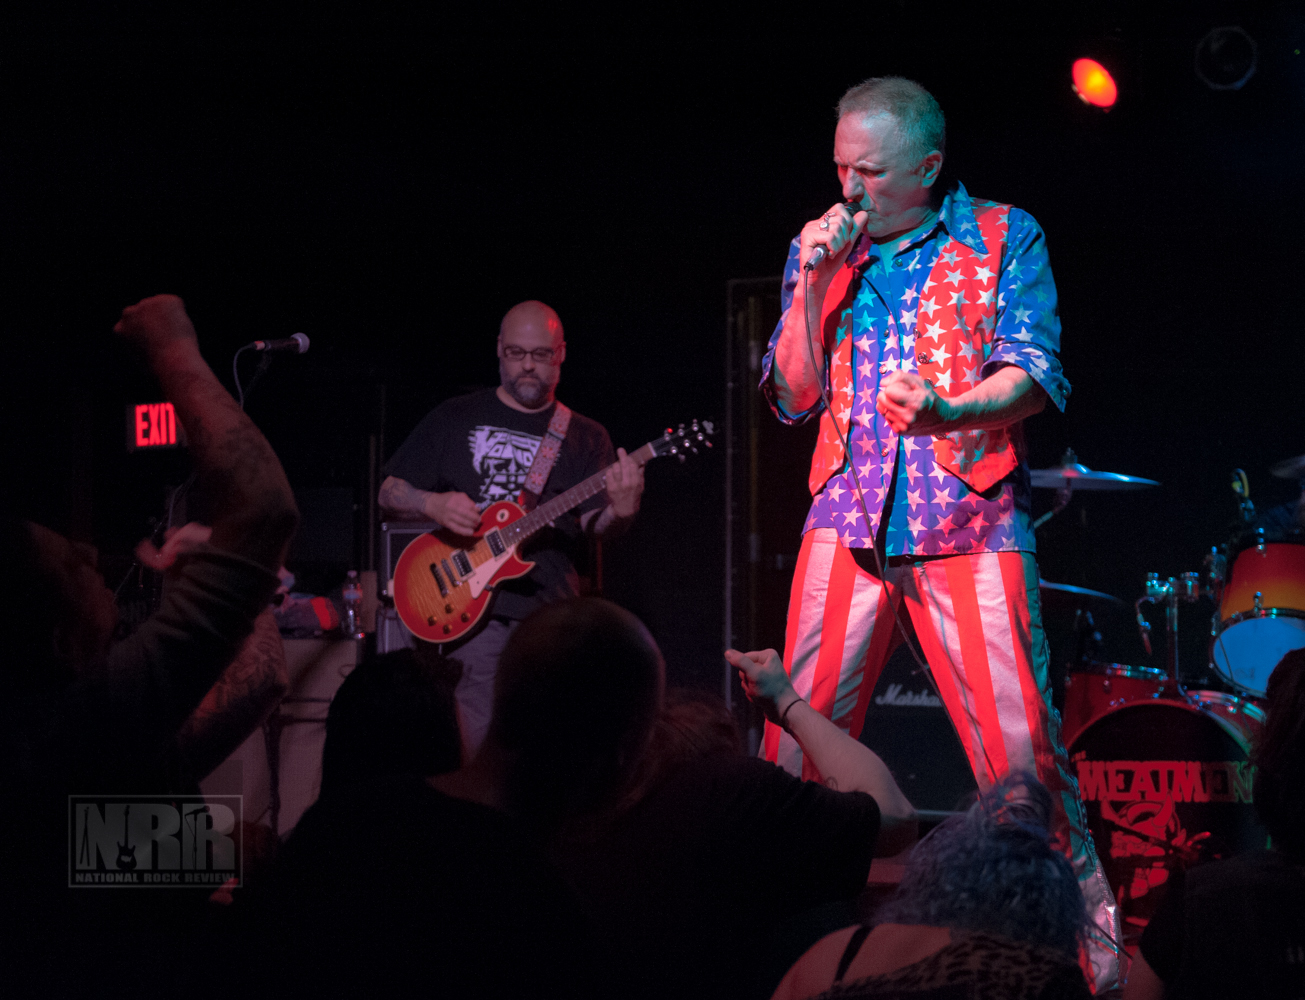 MeatMen-Branx-Portland_OR-20140605-WmRiddle-027.jpg